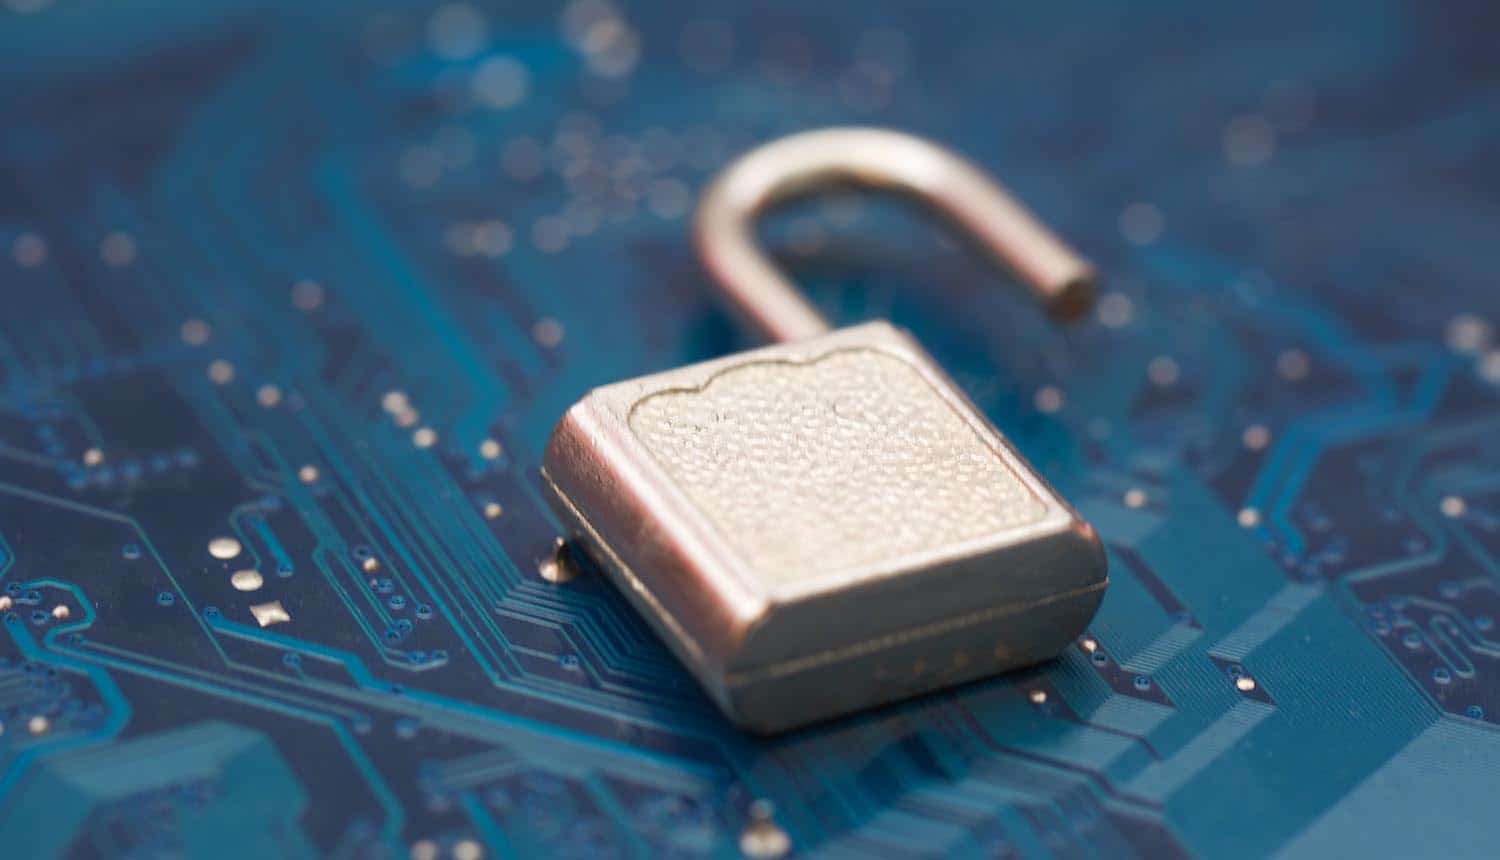 Opened security lock showing Windows vulnerability